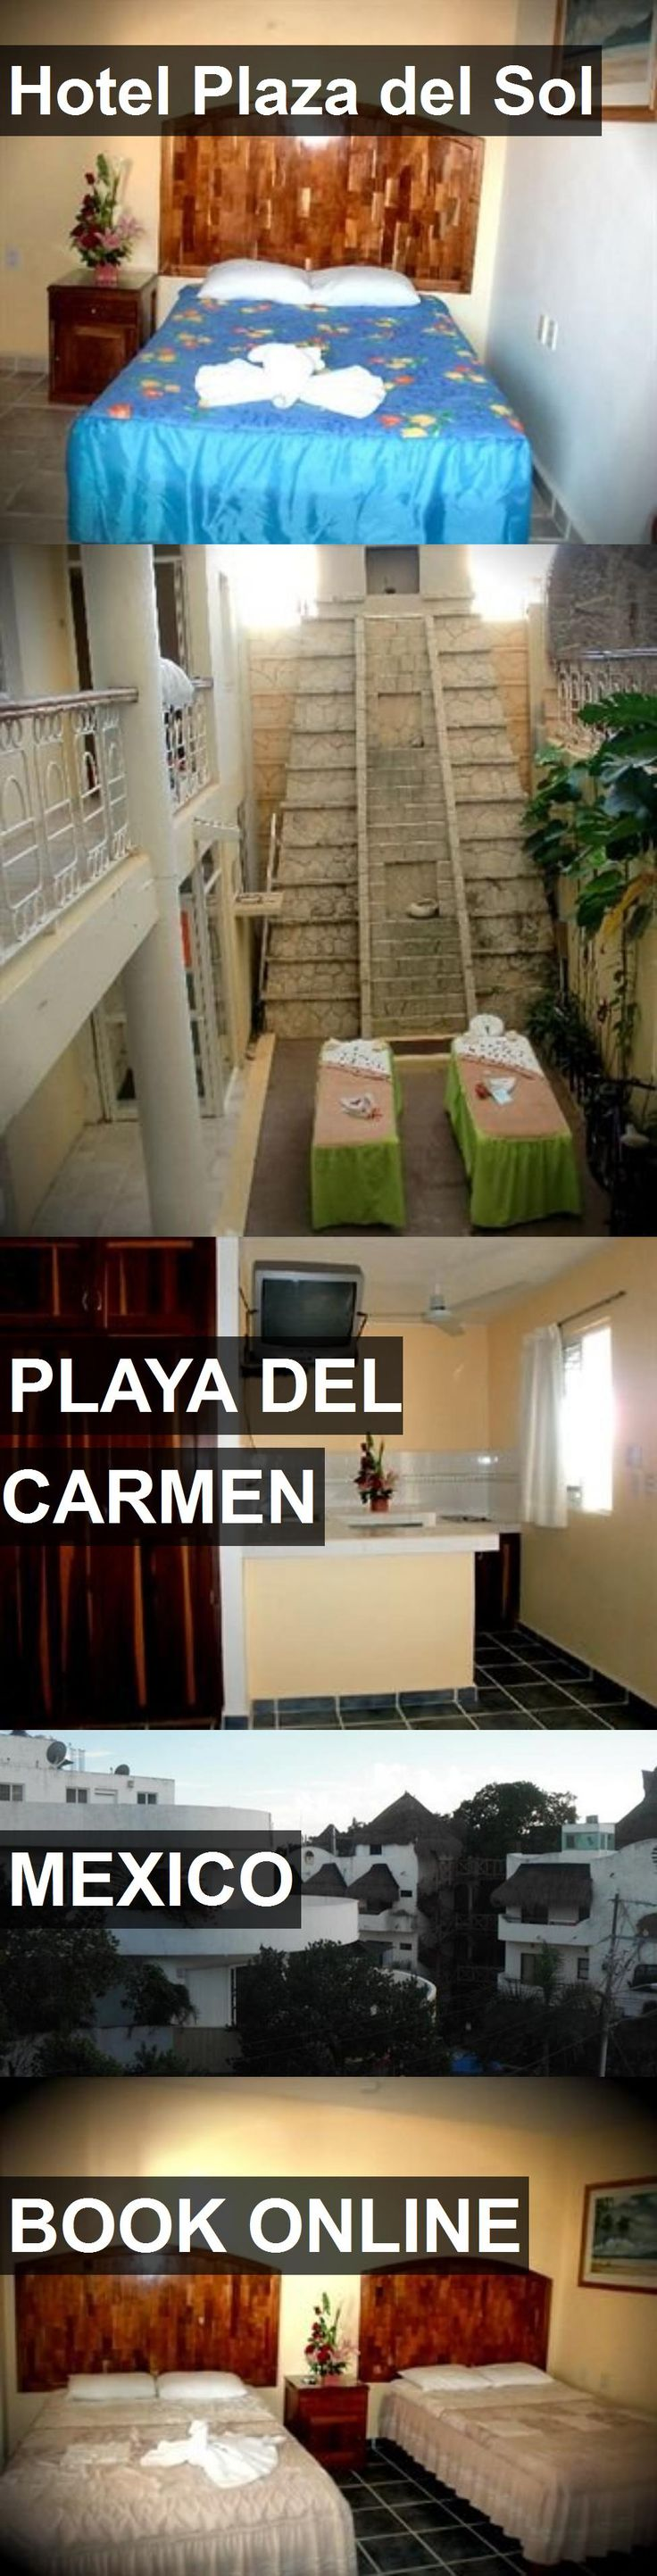 Hotel Plaza del Sol in Playa Del Carmen, Mexico. For more information, photos, reviews and best prices please follow the link. #Mexico #PlayaDelCarmen #travel #vacation #hotel